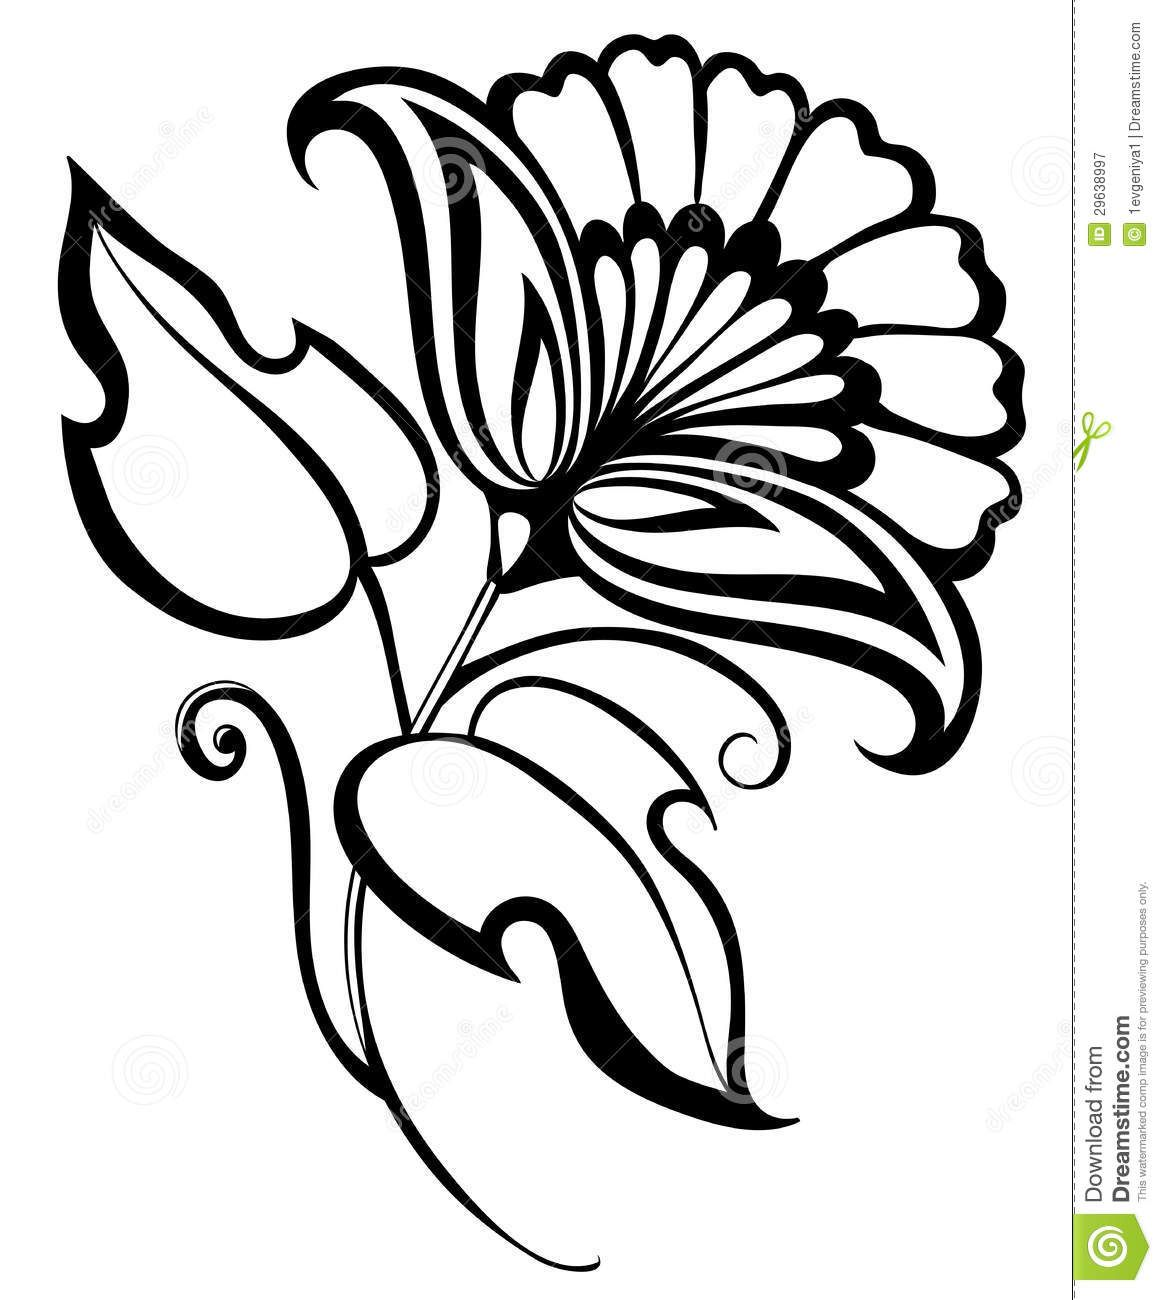 Simple Rose Drawings In Black And White Gallery Easy Flower